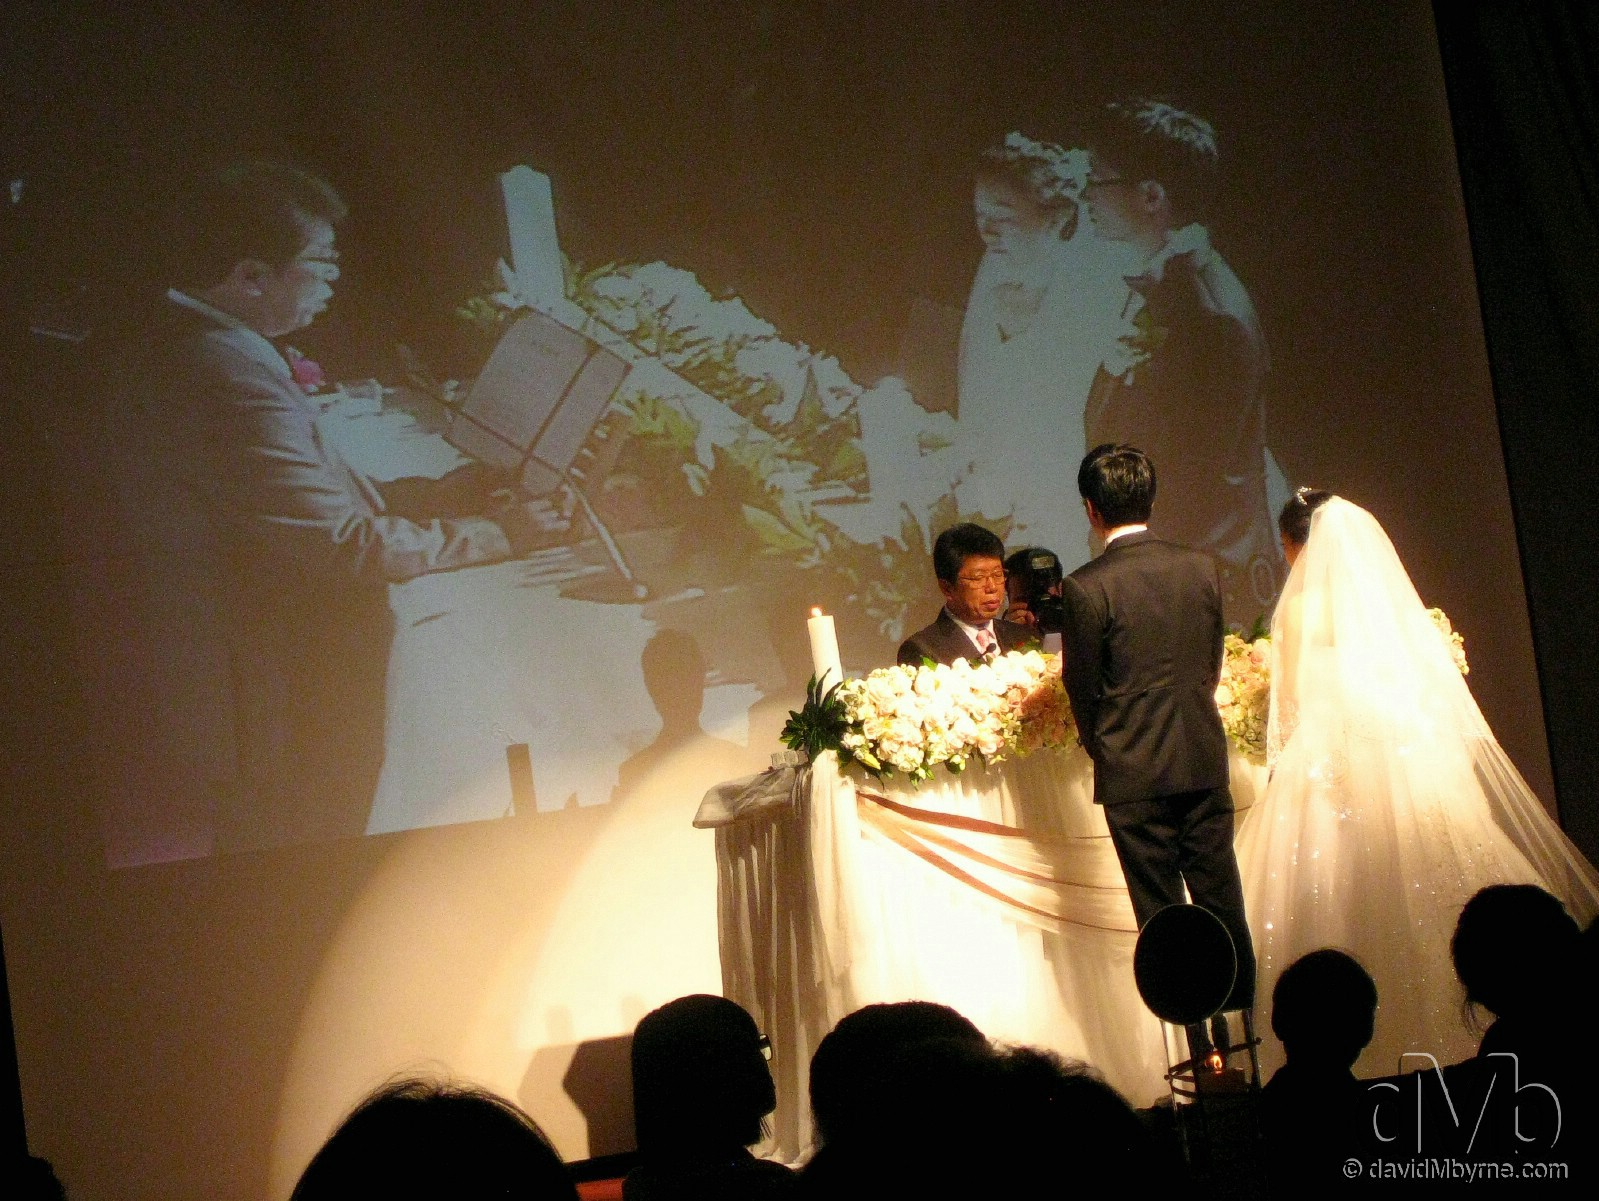 A wedding, Korean style – a big hall, loads of people, flowers, dry-ice & multimedia equipment. And it's all over quicker than one can say 'I do.' aT Building, Yangjae-dong, Seoul, South Korea. April 2nd, 2011 (Canon IXUS DIGITAL 80IS)